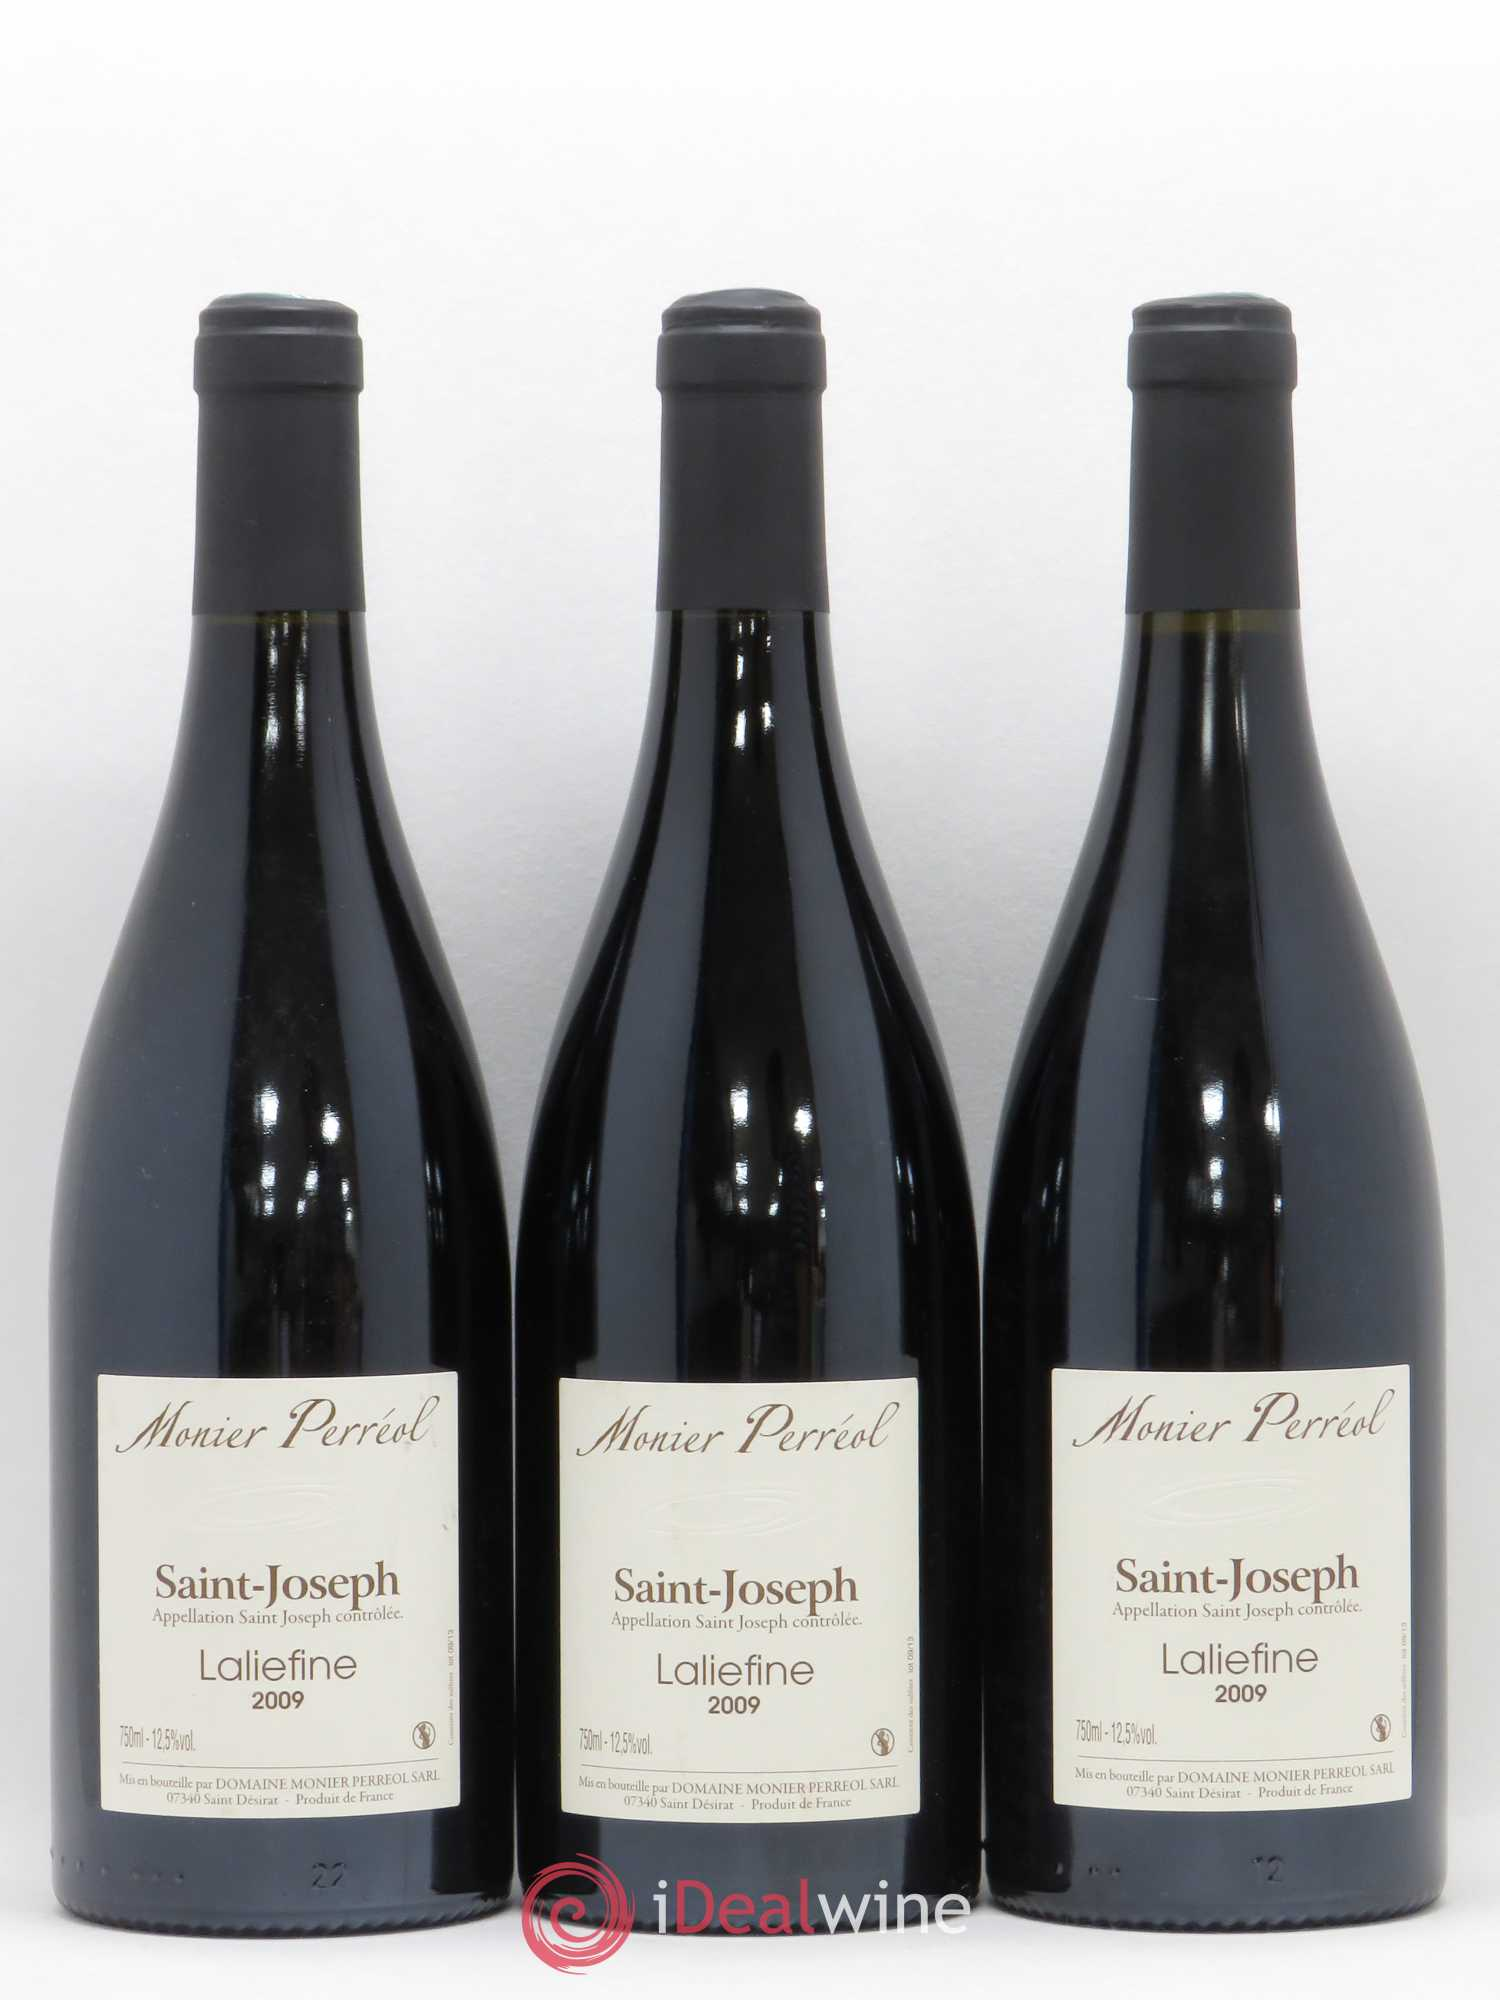 Saint-Joseph Laliefine Monier Perreol 2009 - Lot de 3 Bouteilles